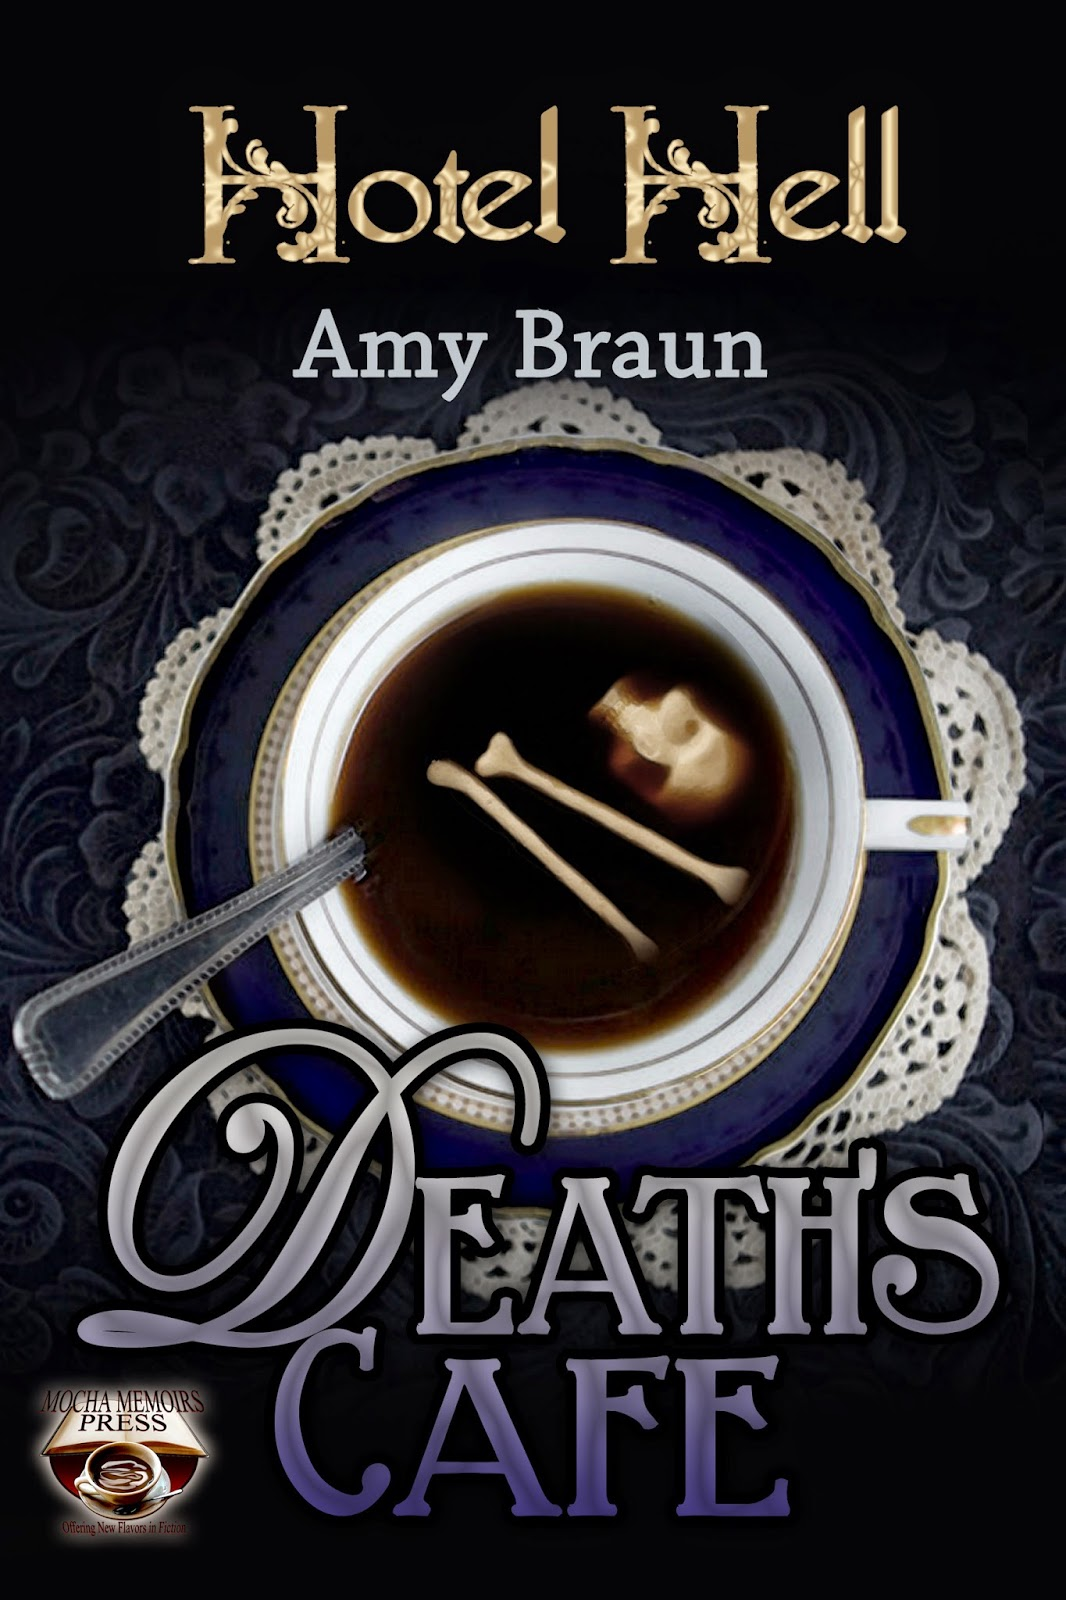 http://www.amazon.com/Deaths-Cafe-Hotel-Amy-Braun-ebook/dp/B00OAONK90